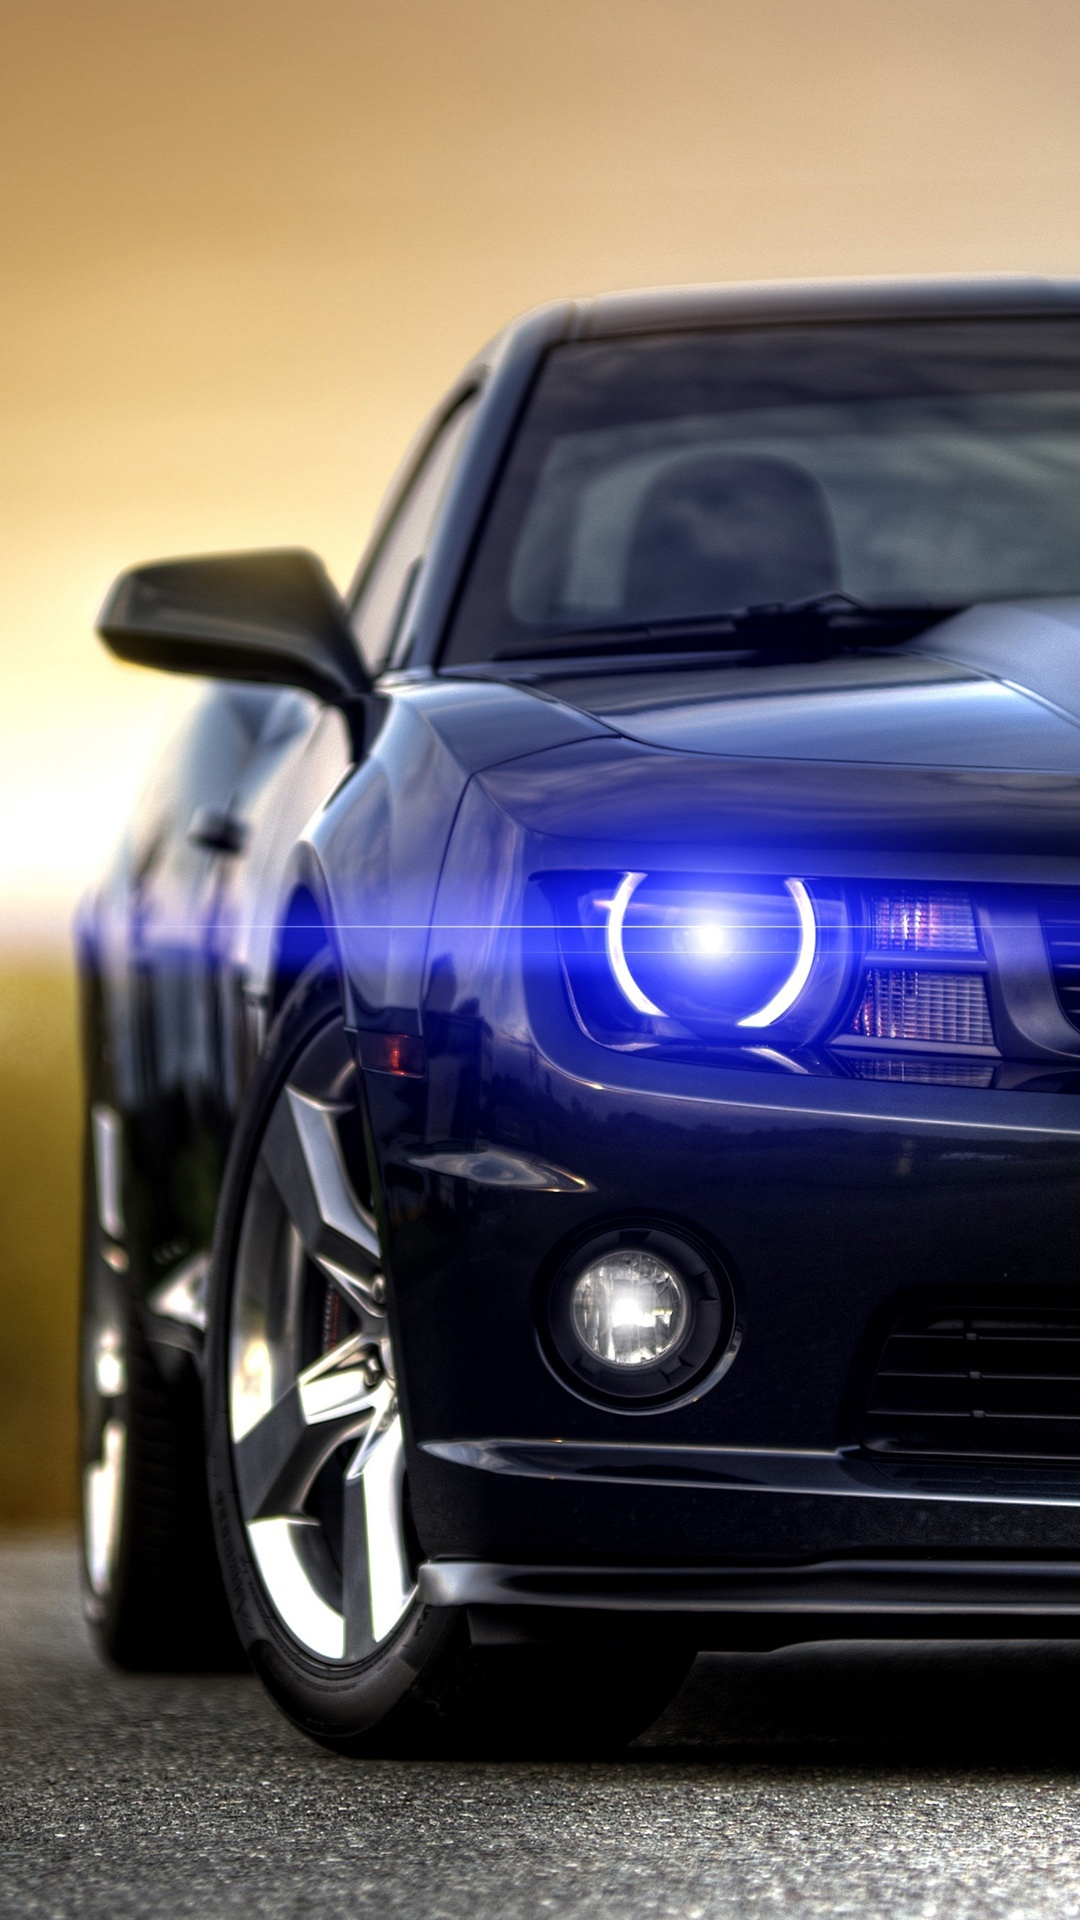 Chevrolet Camaro Muscle Car Wallpapers In Jpg Format For